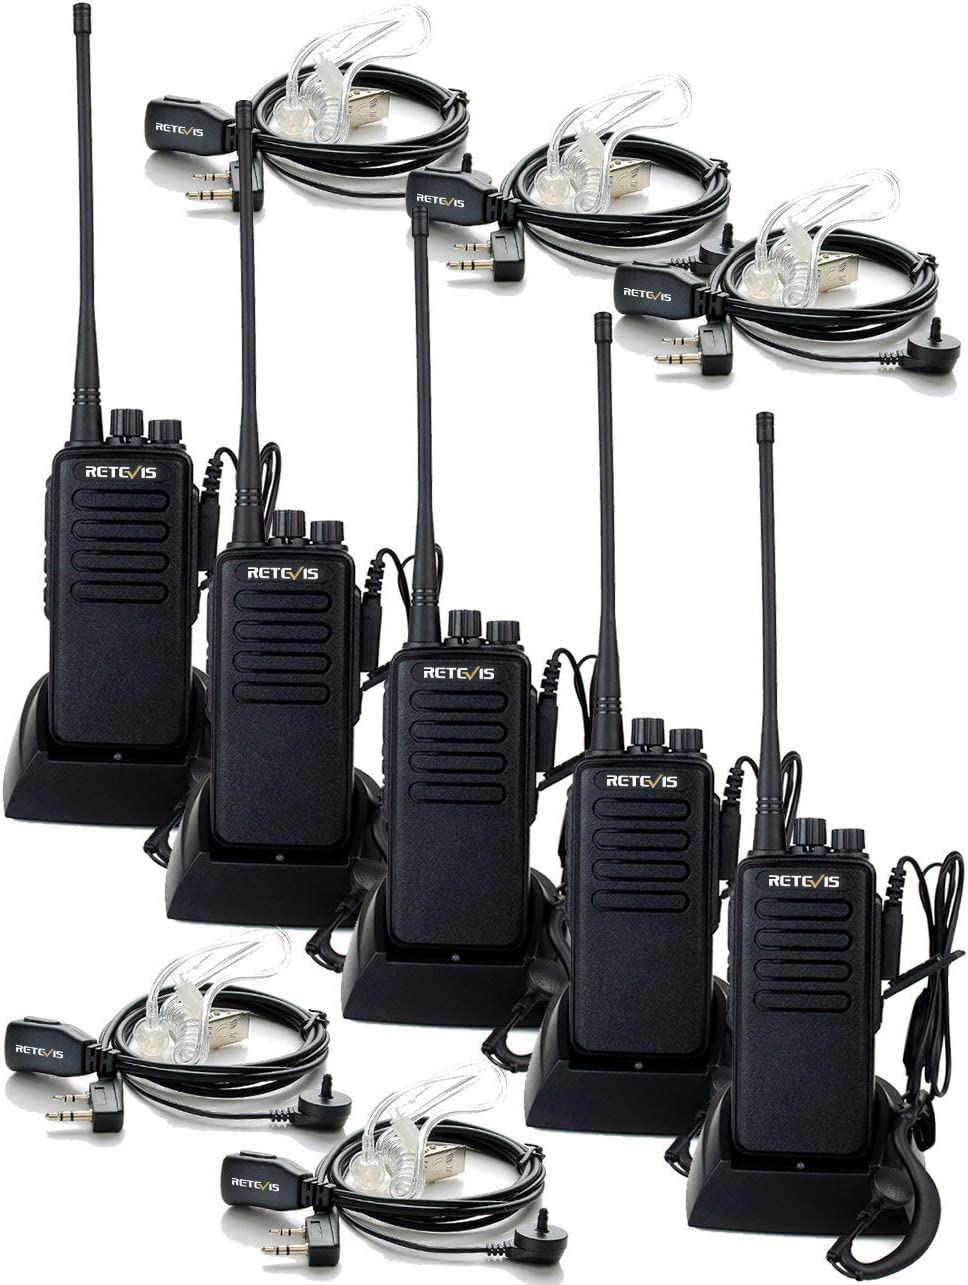 Retevis RT1 Two Way Radios Long Range High-Power UHF 16 Channel 2 Way Radios Hands Free Encryption 3000mAh Walkie Talkies with Earpiece (5 Pack)